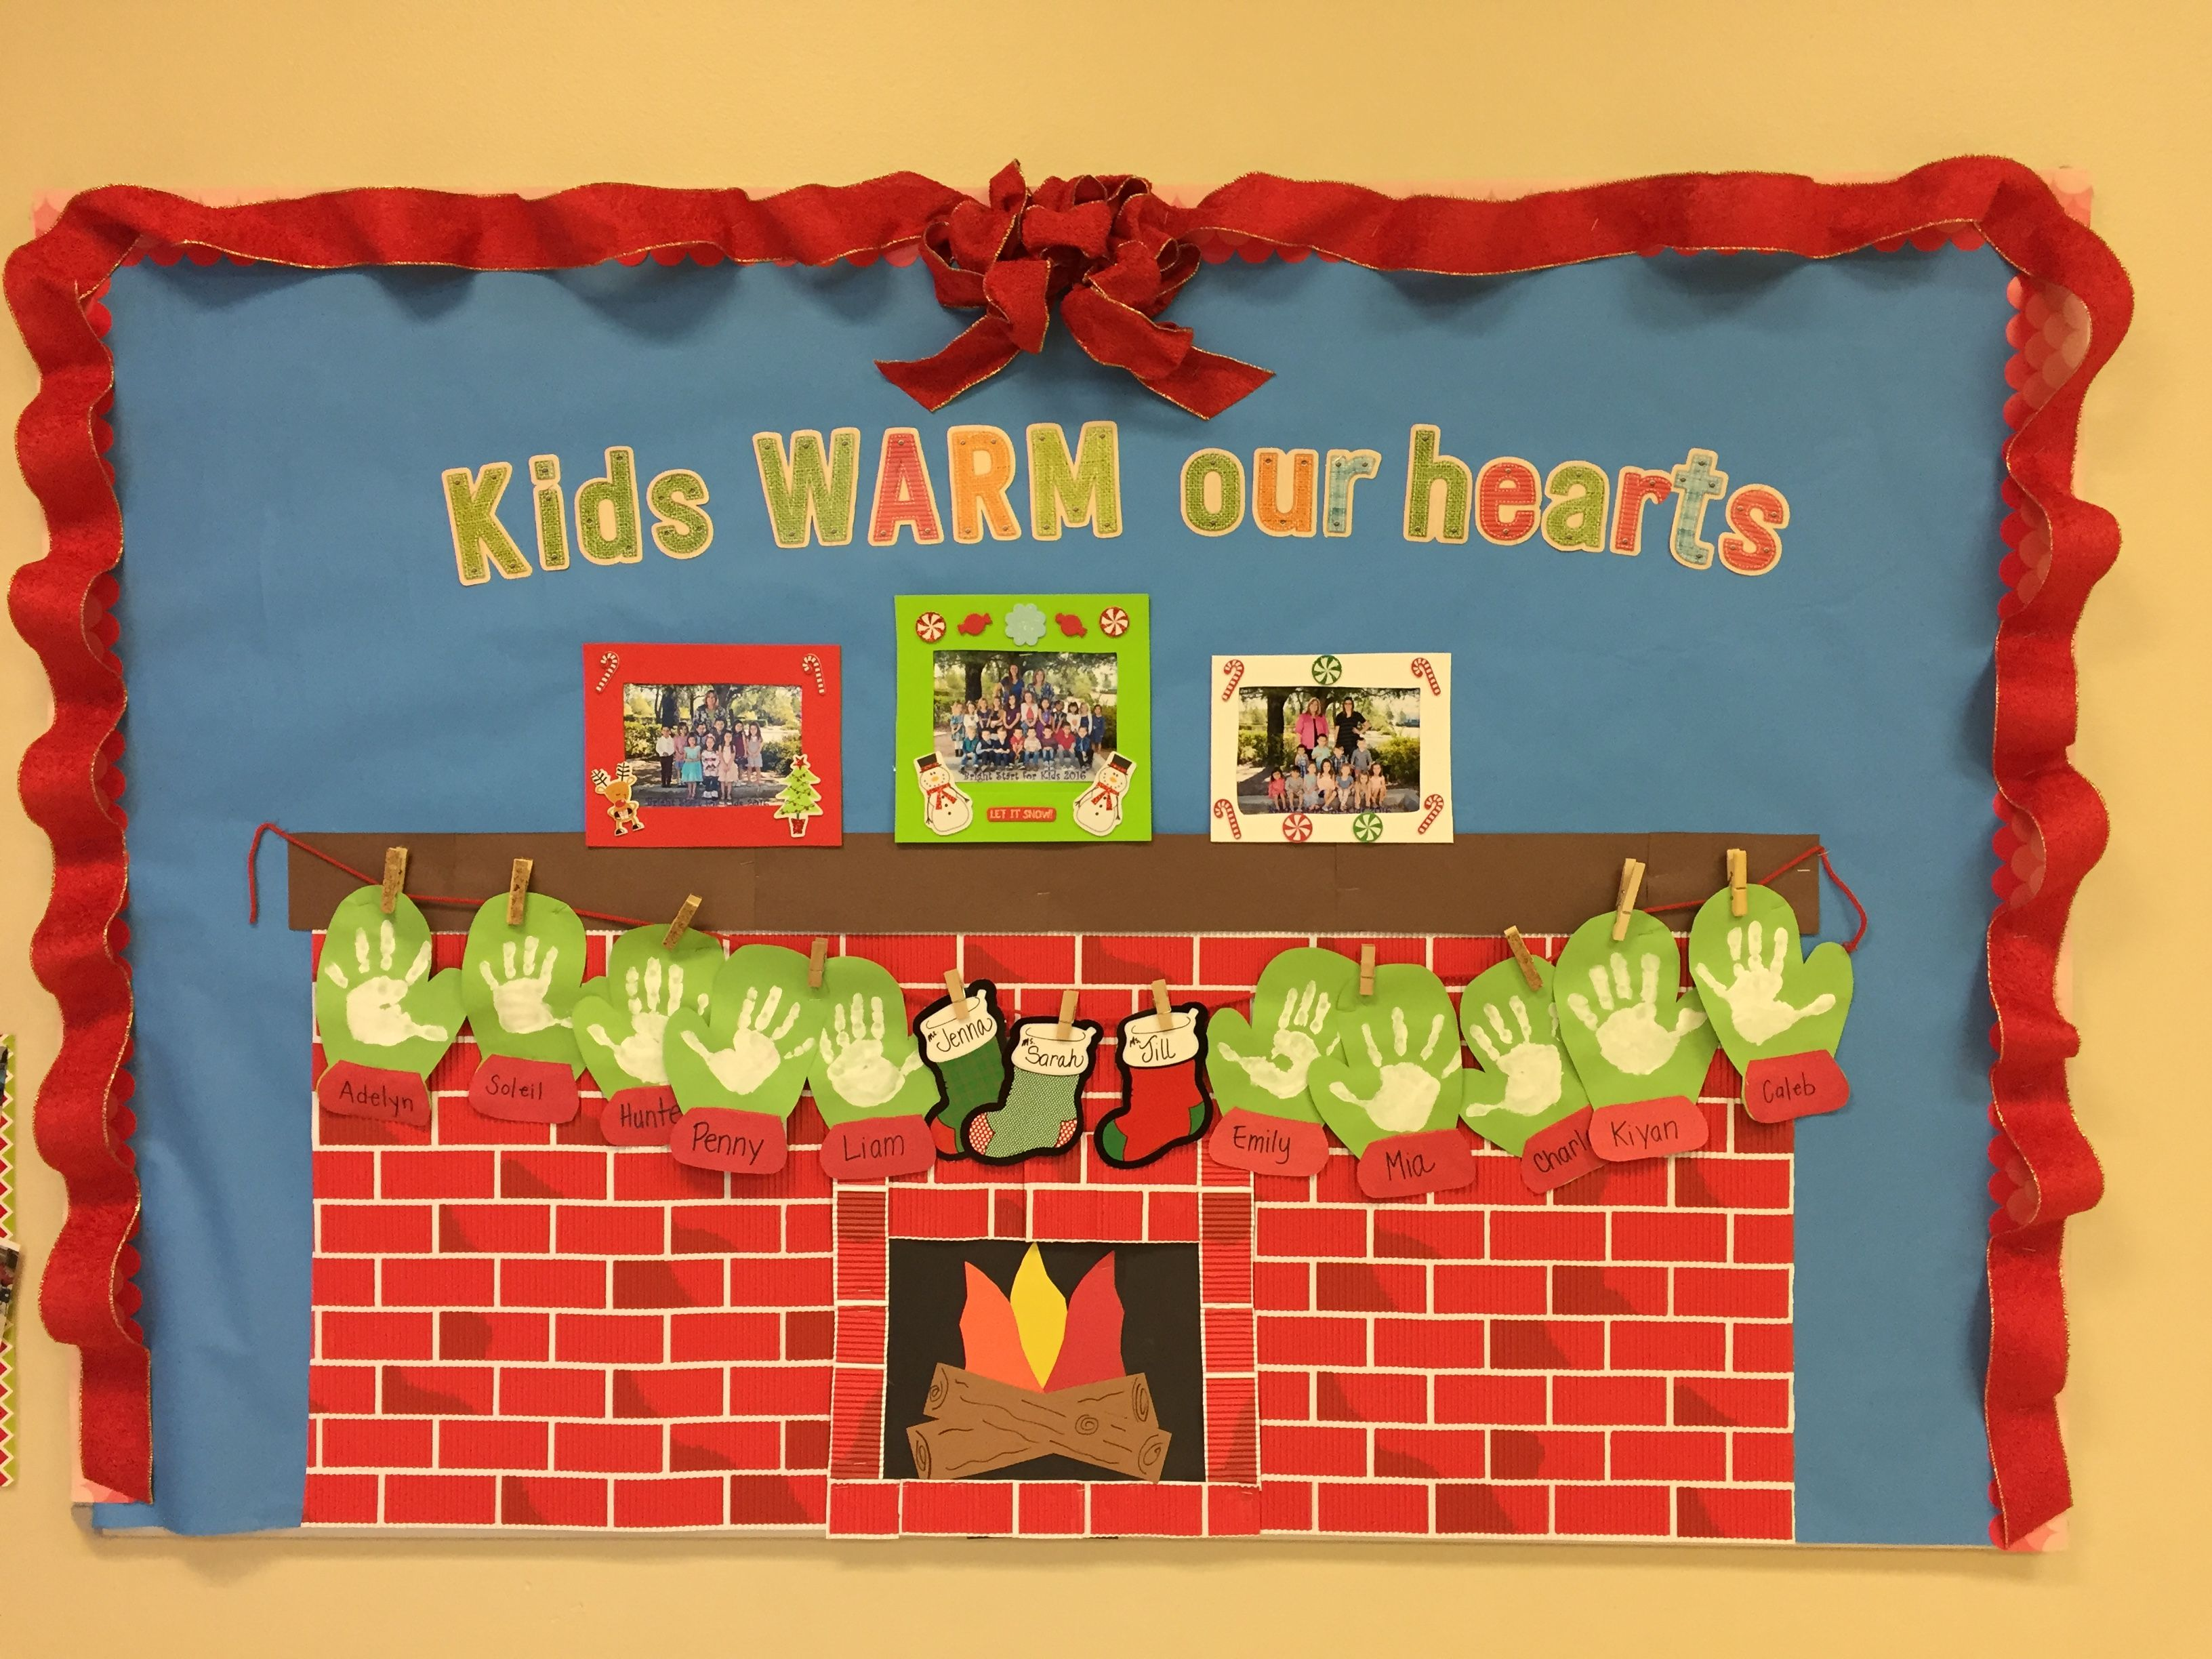 ordinary Christmas Bulletin Board For Preschool Part - 5: Preschool fireplace bulletin board for Christmas - kids warm our hearts for  the holidays